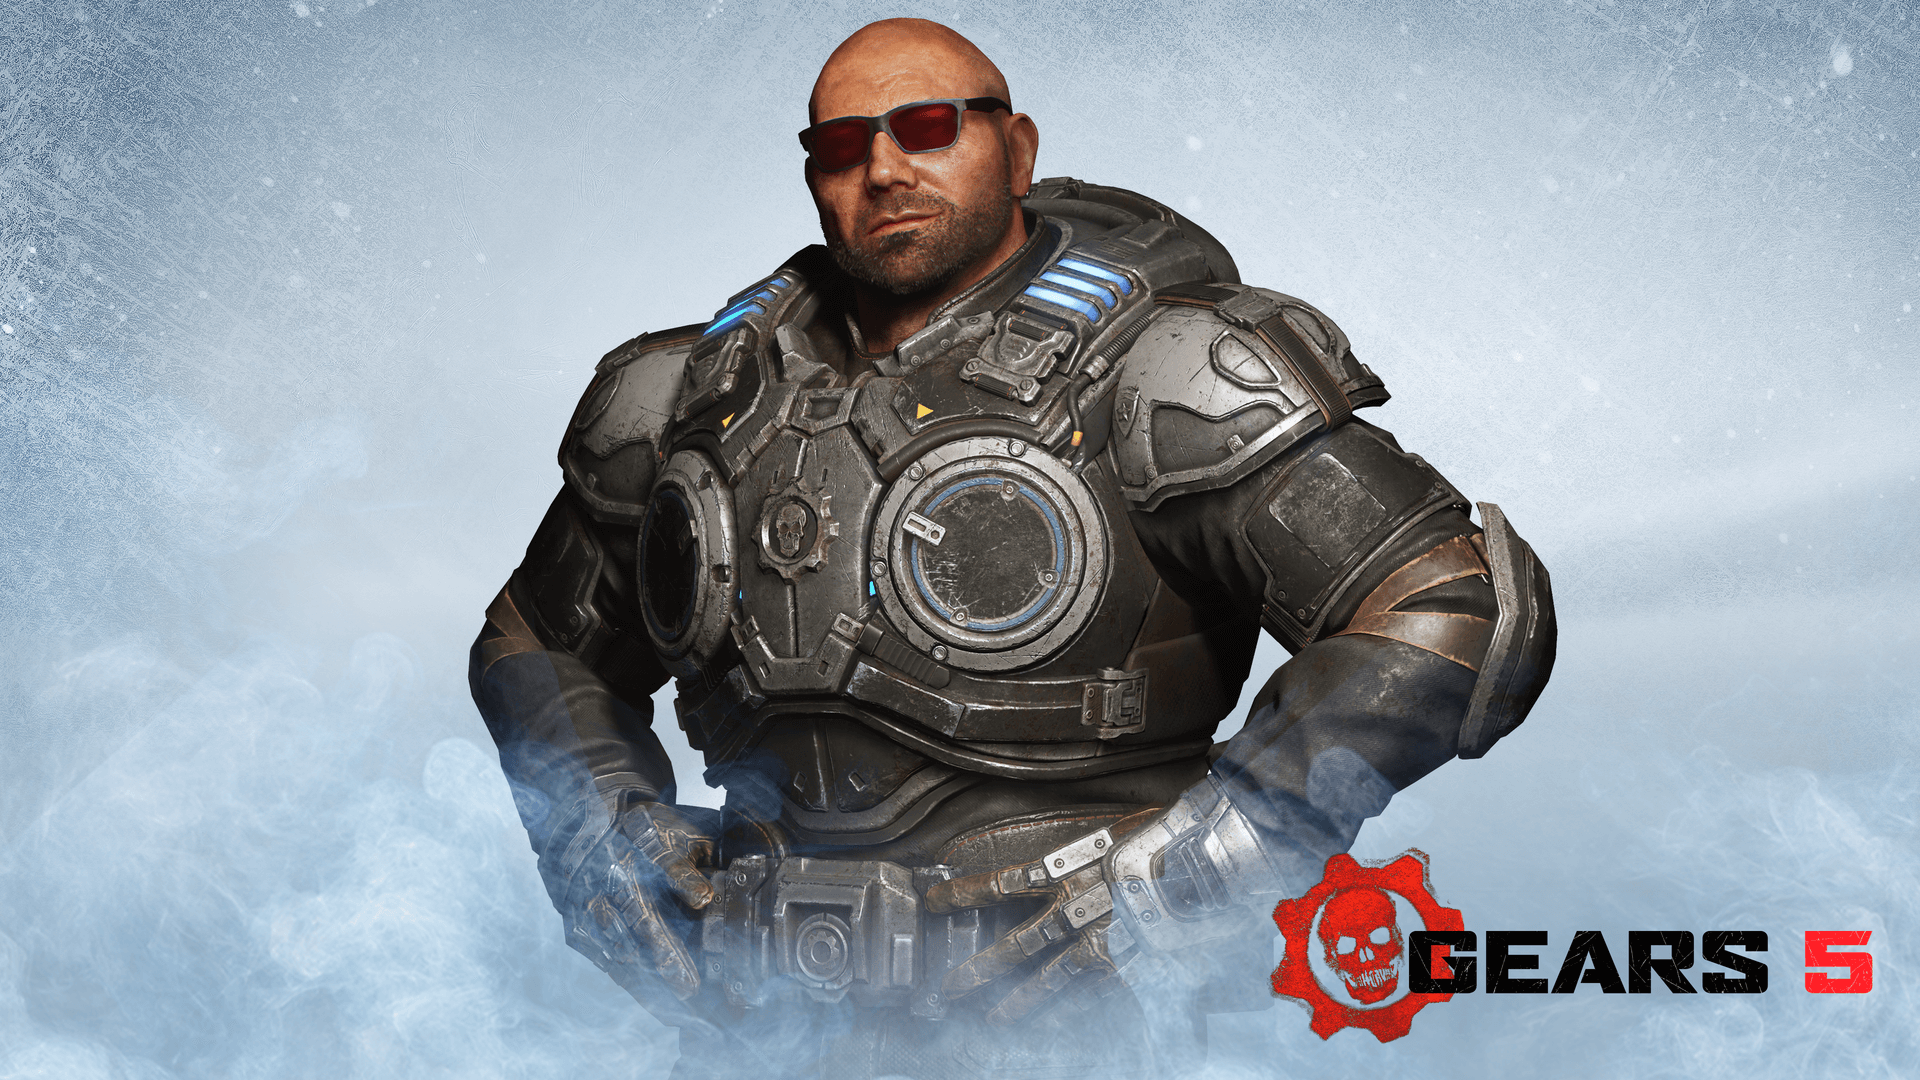 Gears 5 brings WWE Superstar Dave Bautista to the Game!